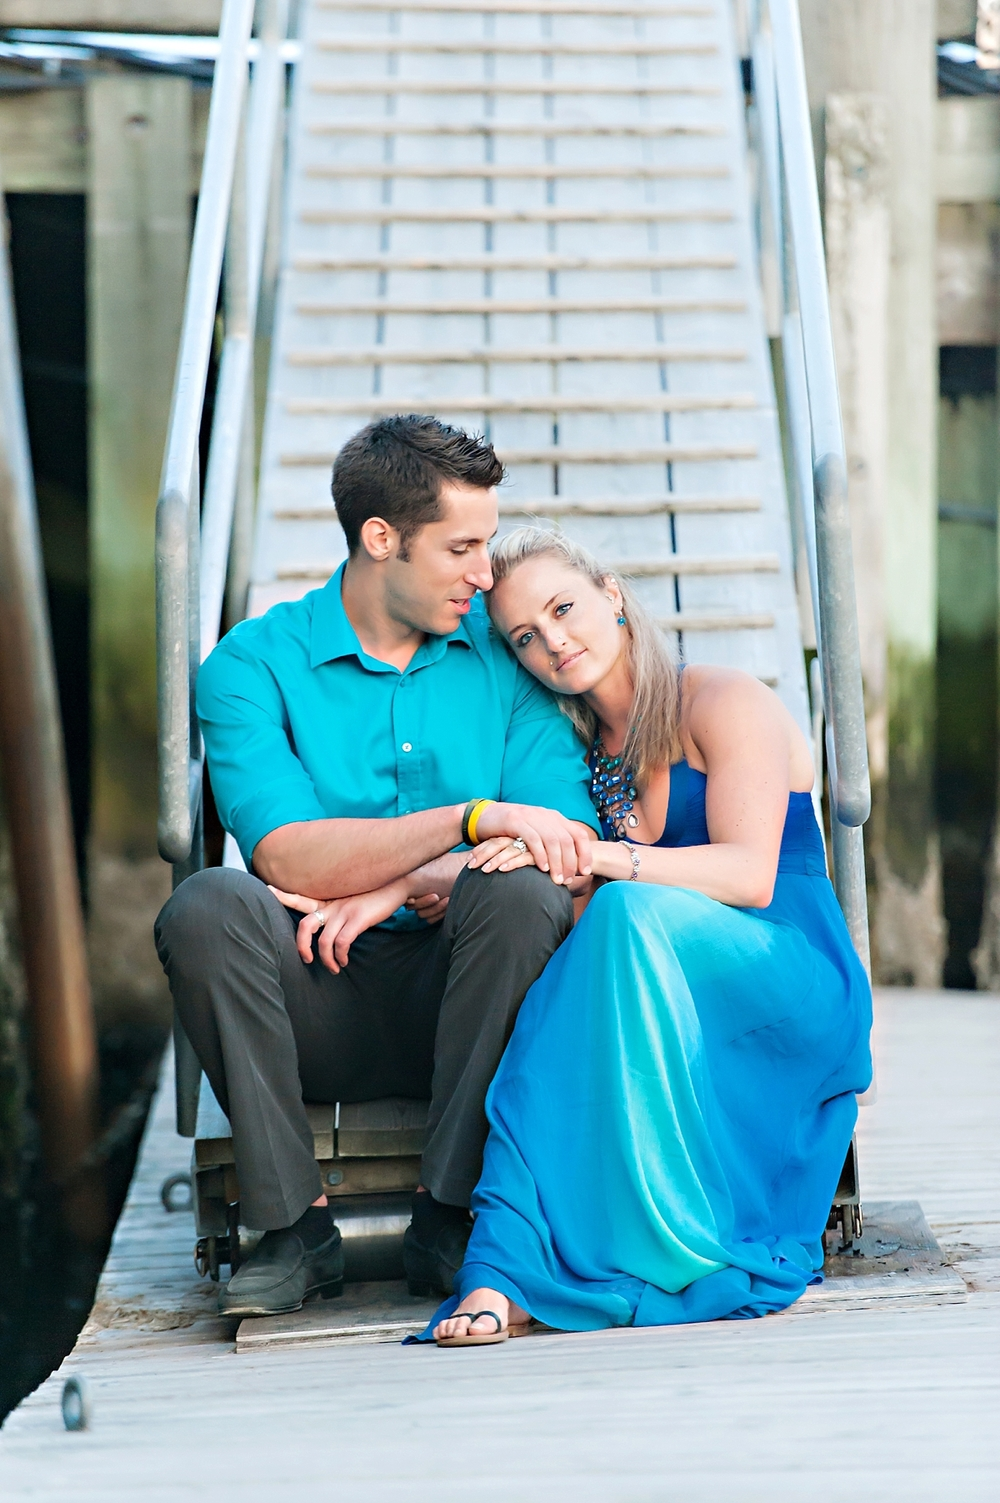 Halifax-Engagement-Photography-Point-Pleasant-Park-Engagement-Candace-Berry-Photography_36.jpg